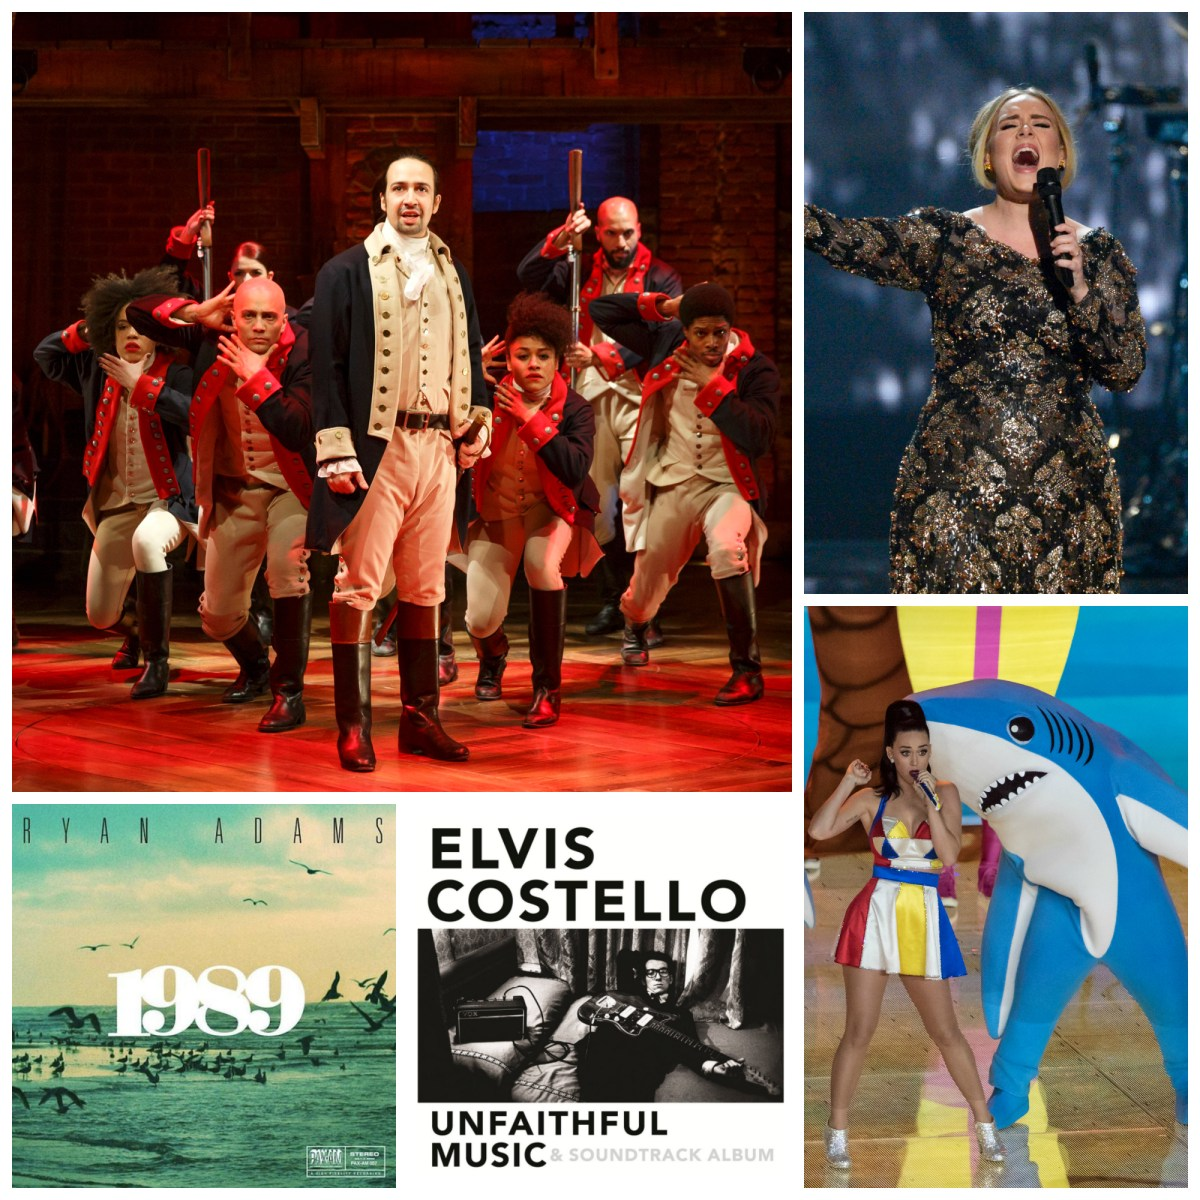 """Notable music highlights from 2015 included the hip-hop """"Hamilton;"""" Adele's omnipresent """"Hello;"""" Katy Perry's sharks; Elvis Costello's book soundtrack (not to mention the book); and Ryan Adams morphing into Taylor Swift. Photos: Joan Marcus/The Public Theater; Virginia Sherwood/NBC; Wikimedia Commons; Courtesy Photos."""